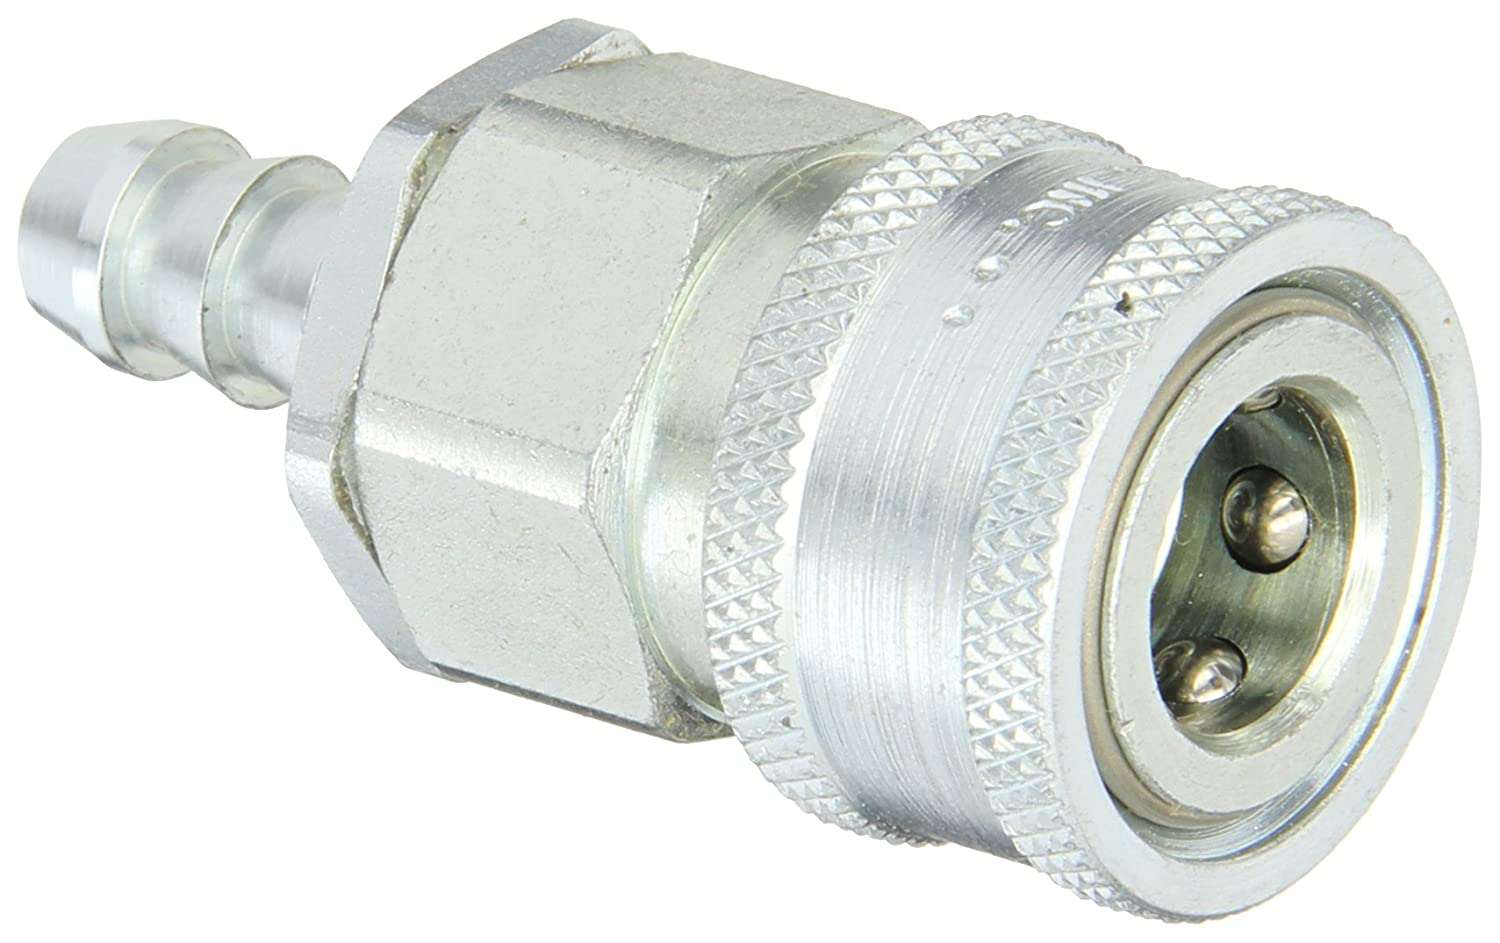 Snap-Tite VHC6-6H Zinc-Plated Steel H-Shape Quick-Disconnect Hose Coupling 3//8 Hose ID x 3//8 Coupling Size 3//8 Hose ID x 3//8 Coupling Size Sleeve-Lock Socket